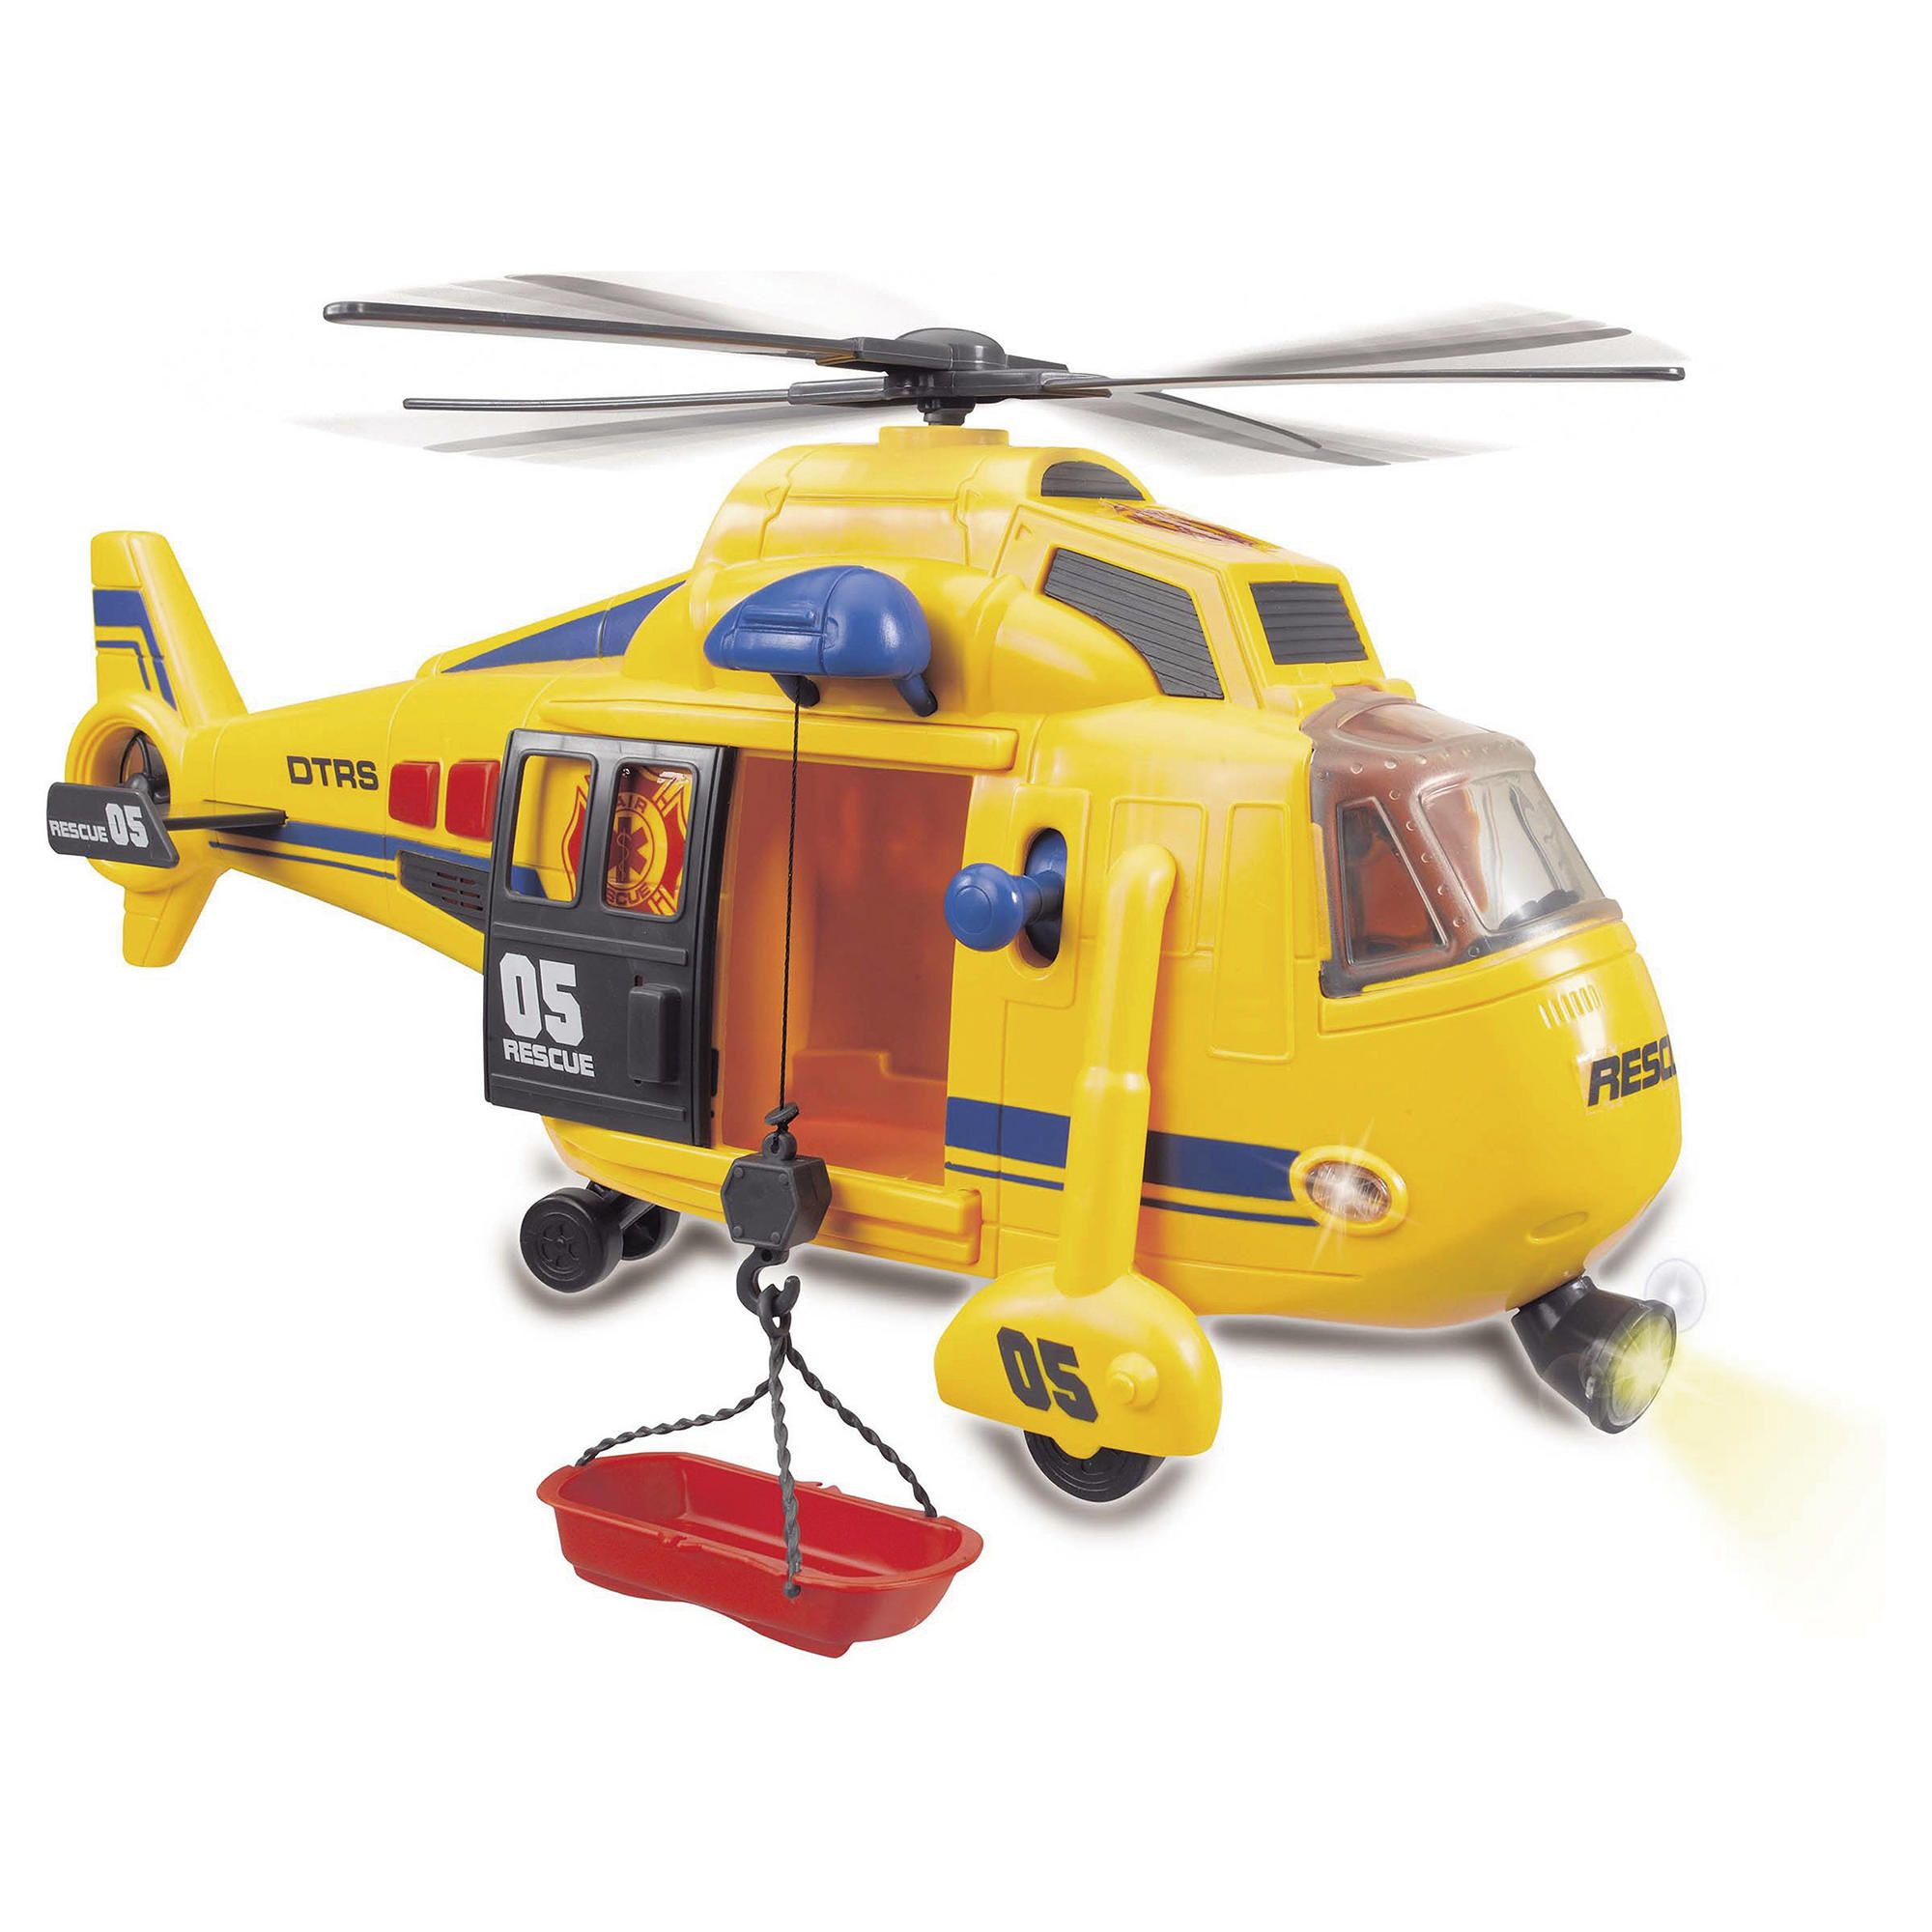 silverlit heli with Consoles And Toys on Nine Eagles Galaxy Visitor Rtf Groen P 19539 furthermore Blade Micro Apache Bnf P 22567 additionally Hubsan Fpv Video Bril P 9604 additionally Syma S107 Rc Helicopter Only 19 83 Reg 129 99 together with F 1208502 Sil4891813860273.